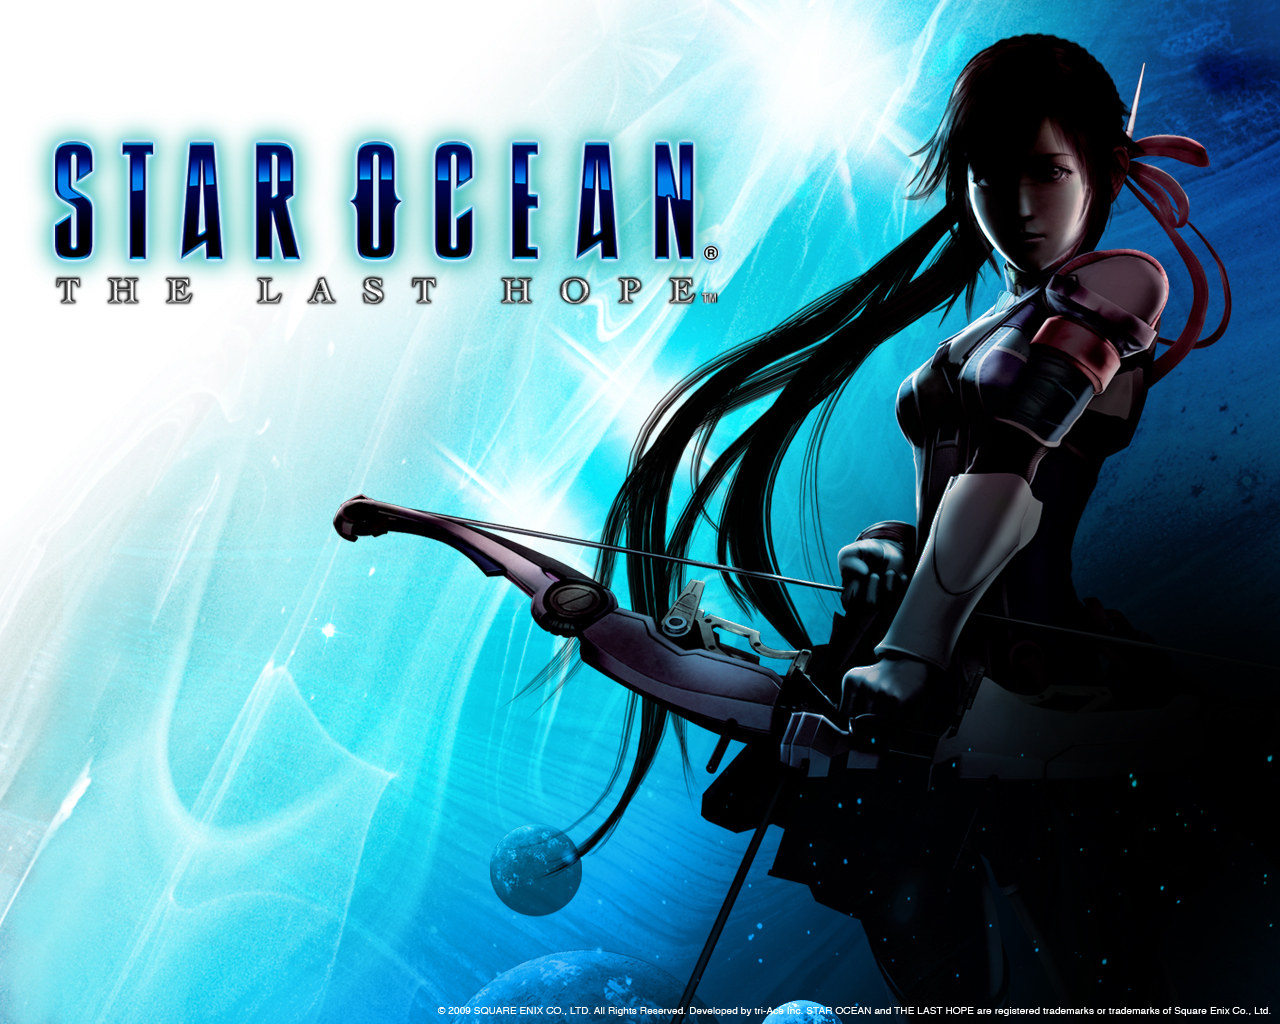 games Para iphone, hopewe will add. Star Ocean Wallpaper The Last Hope